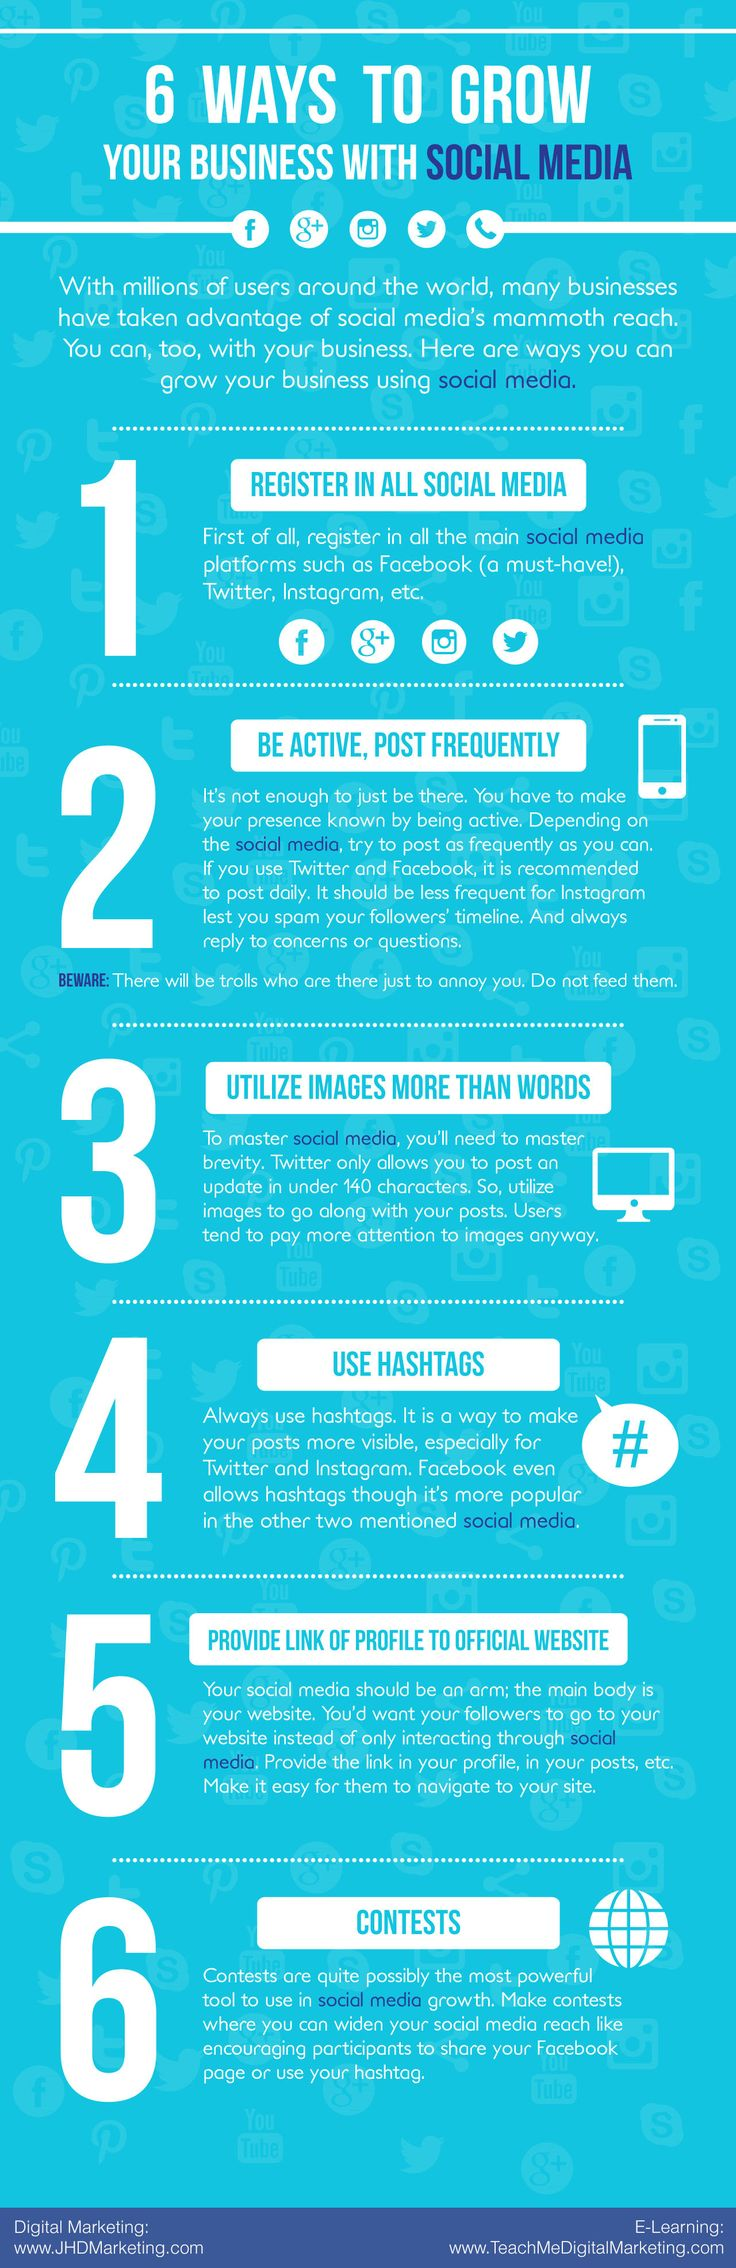 6 Ways To Grow Your Business With Social Media